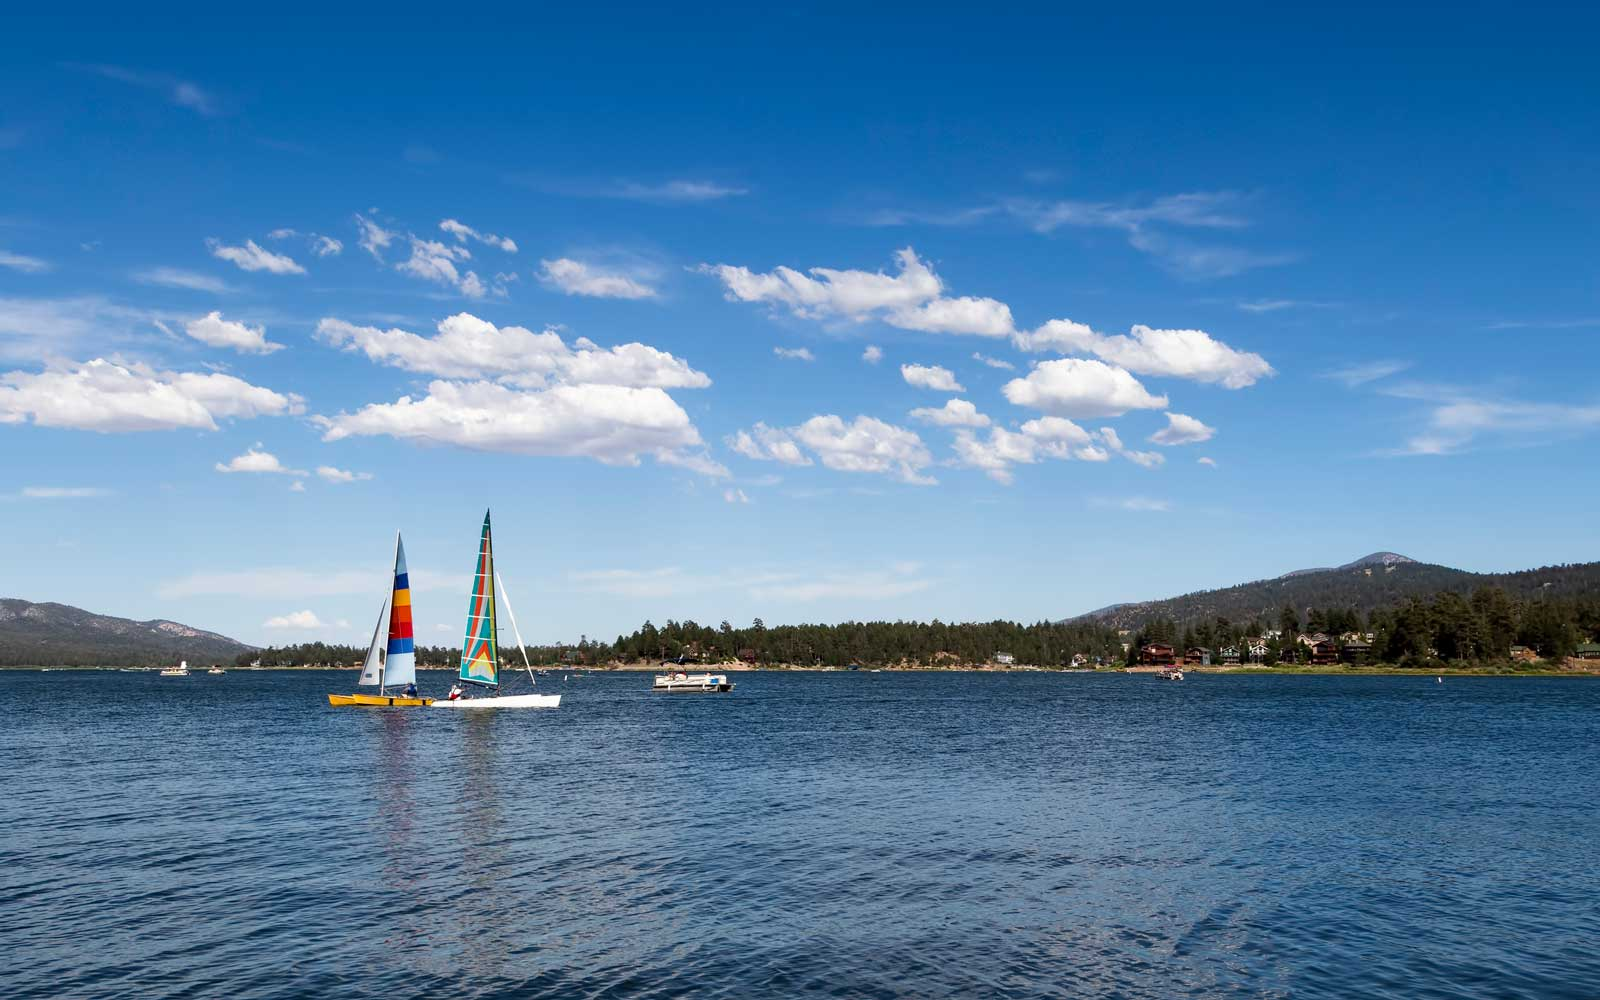 Two Catamarans Sailing On Big Bear Lake Southern California With White Clouds In Blue Sky